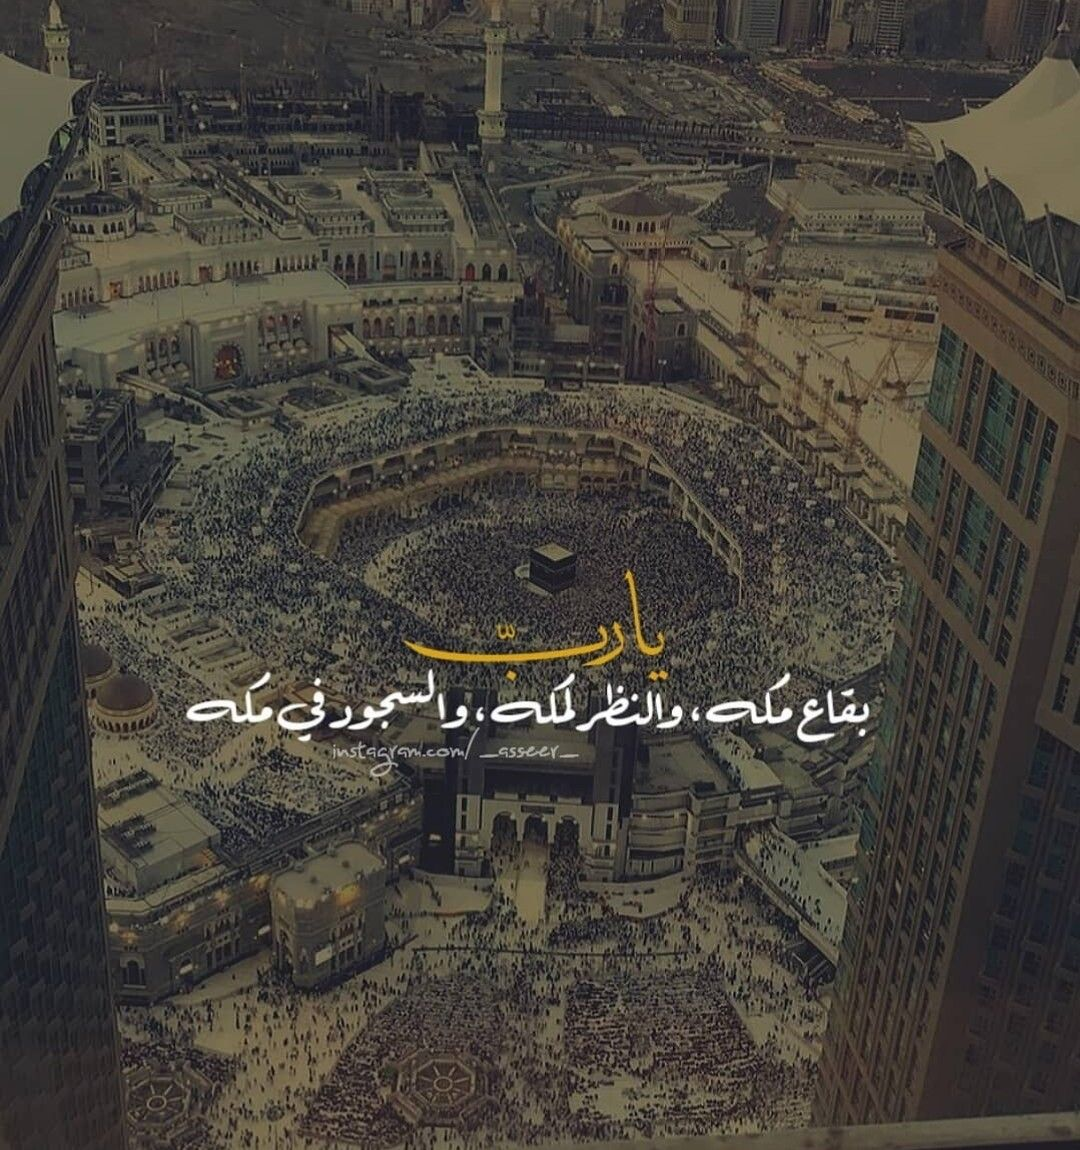 Pin By ليدي On اطهر بقاع الأرض Lettering Islamic Quotes Mecca